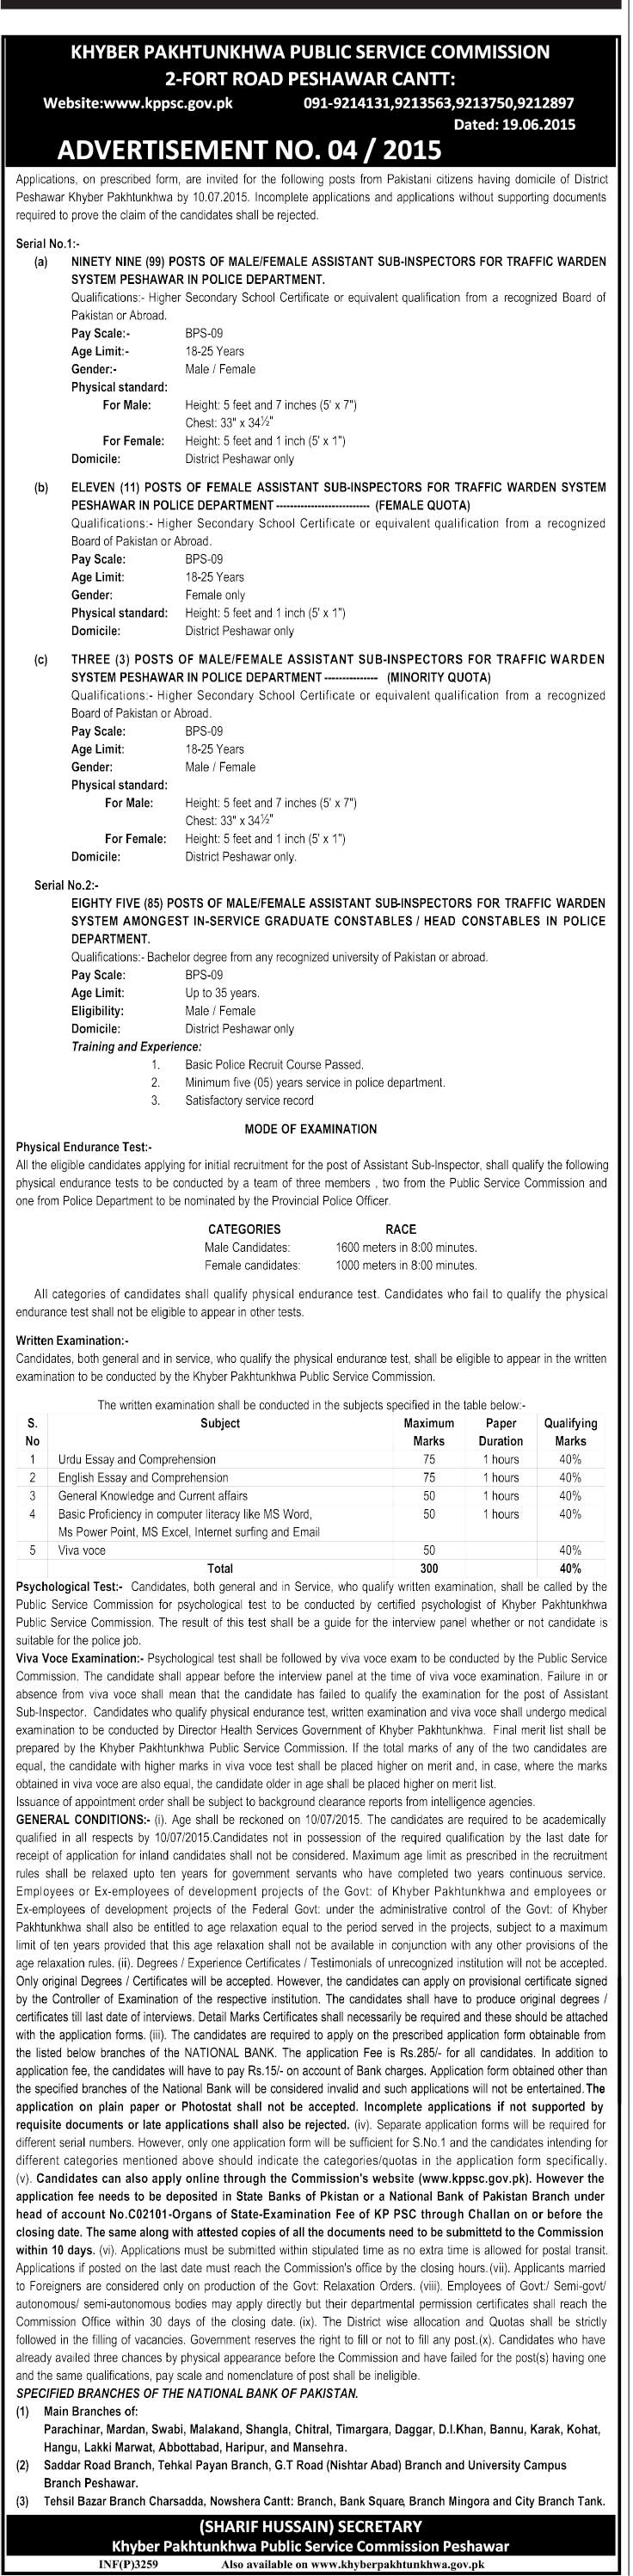 KPK PSC Assistant Sub Inspector ASI Jobs 2015 For Traffic Warden Online Registration